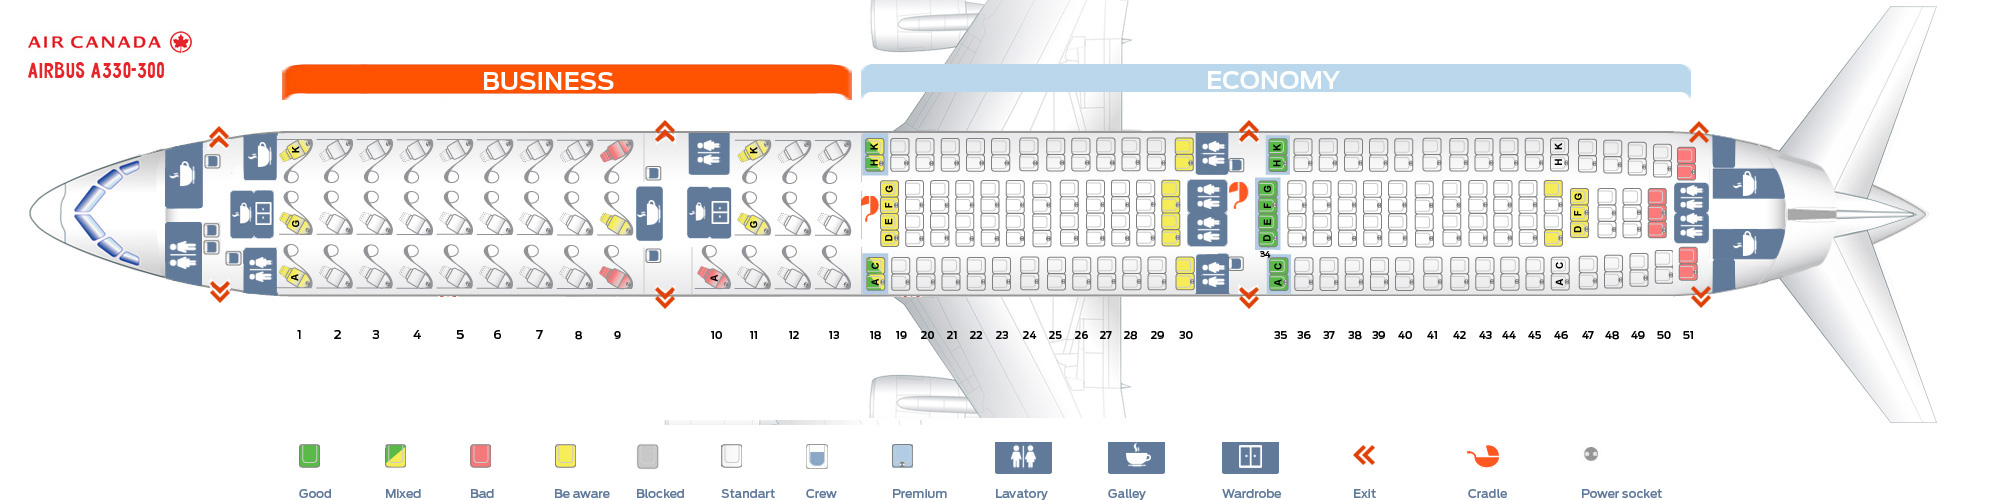 Seat_map_Air_Canada_Airbus_A330-300